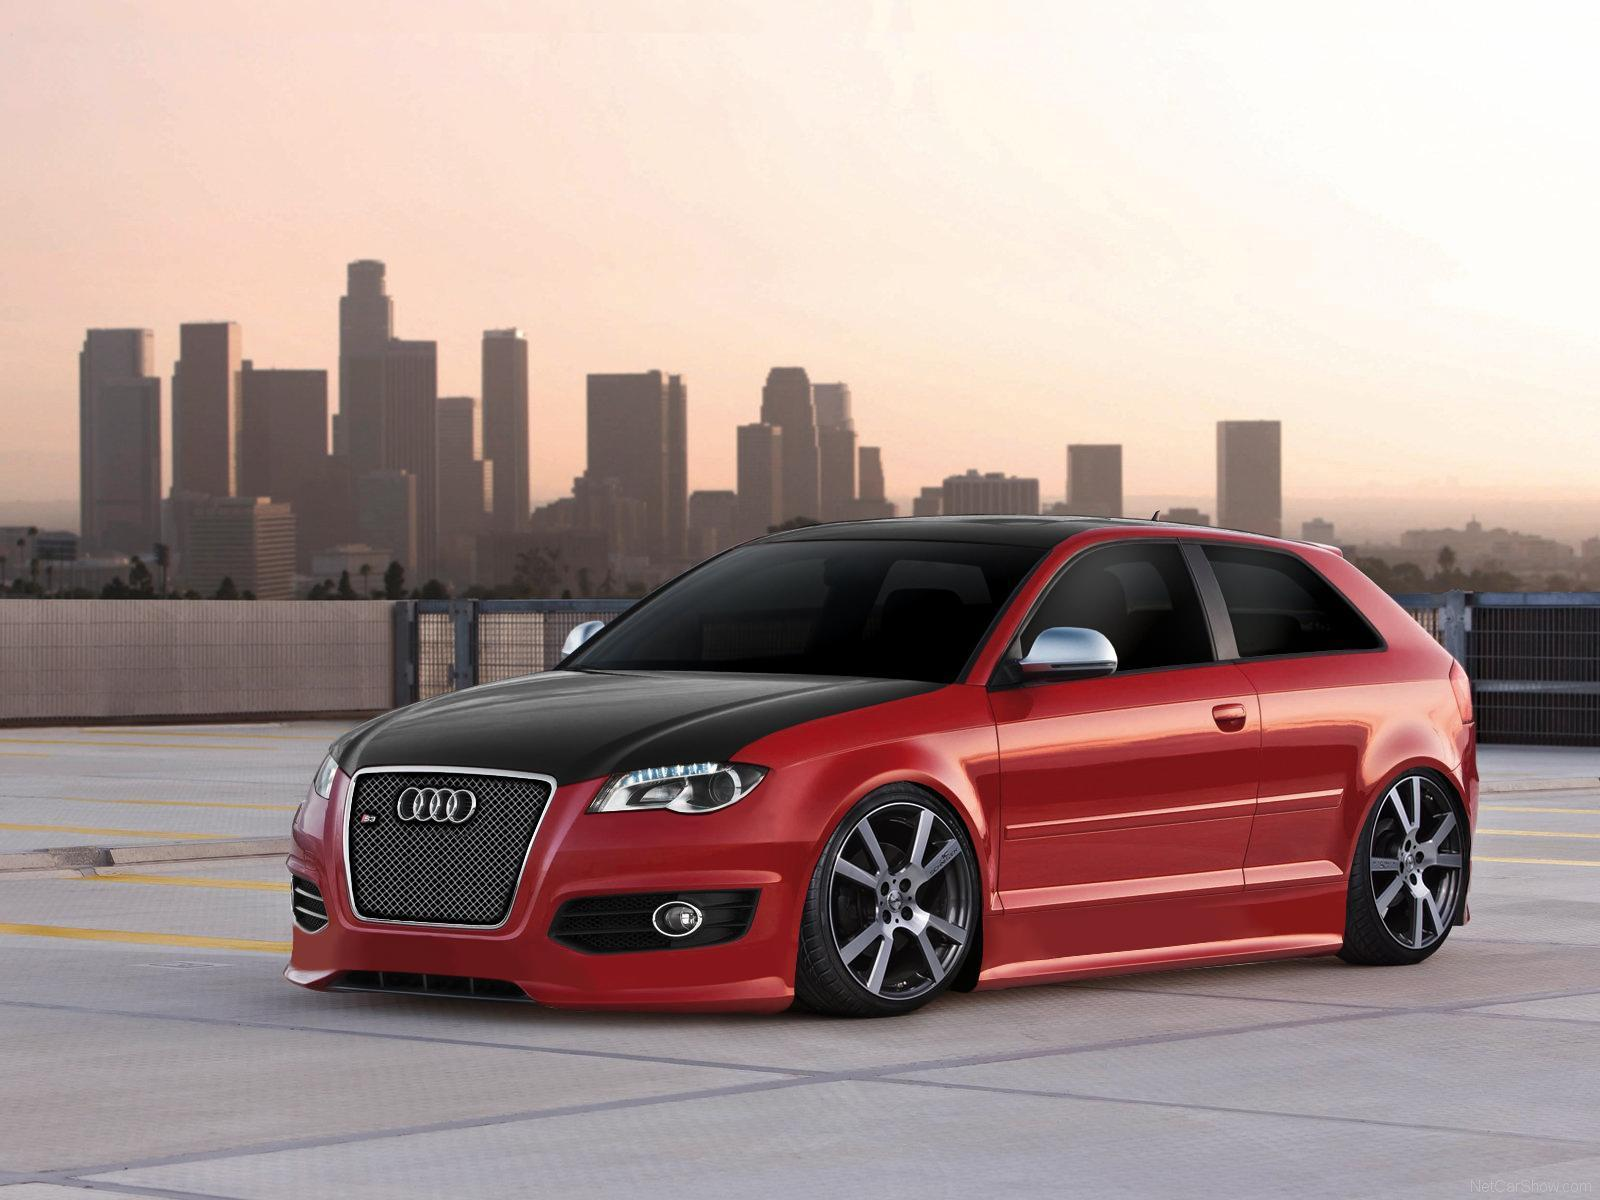 audi images audi s3 tuning hd wallpaper and background. Black Bedroom Furniture Sets. Home Design Ideas